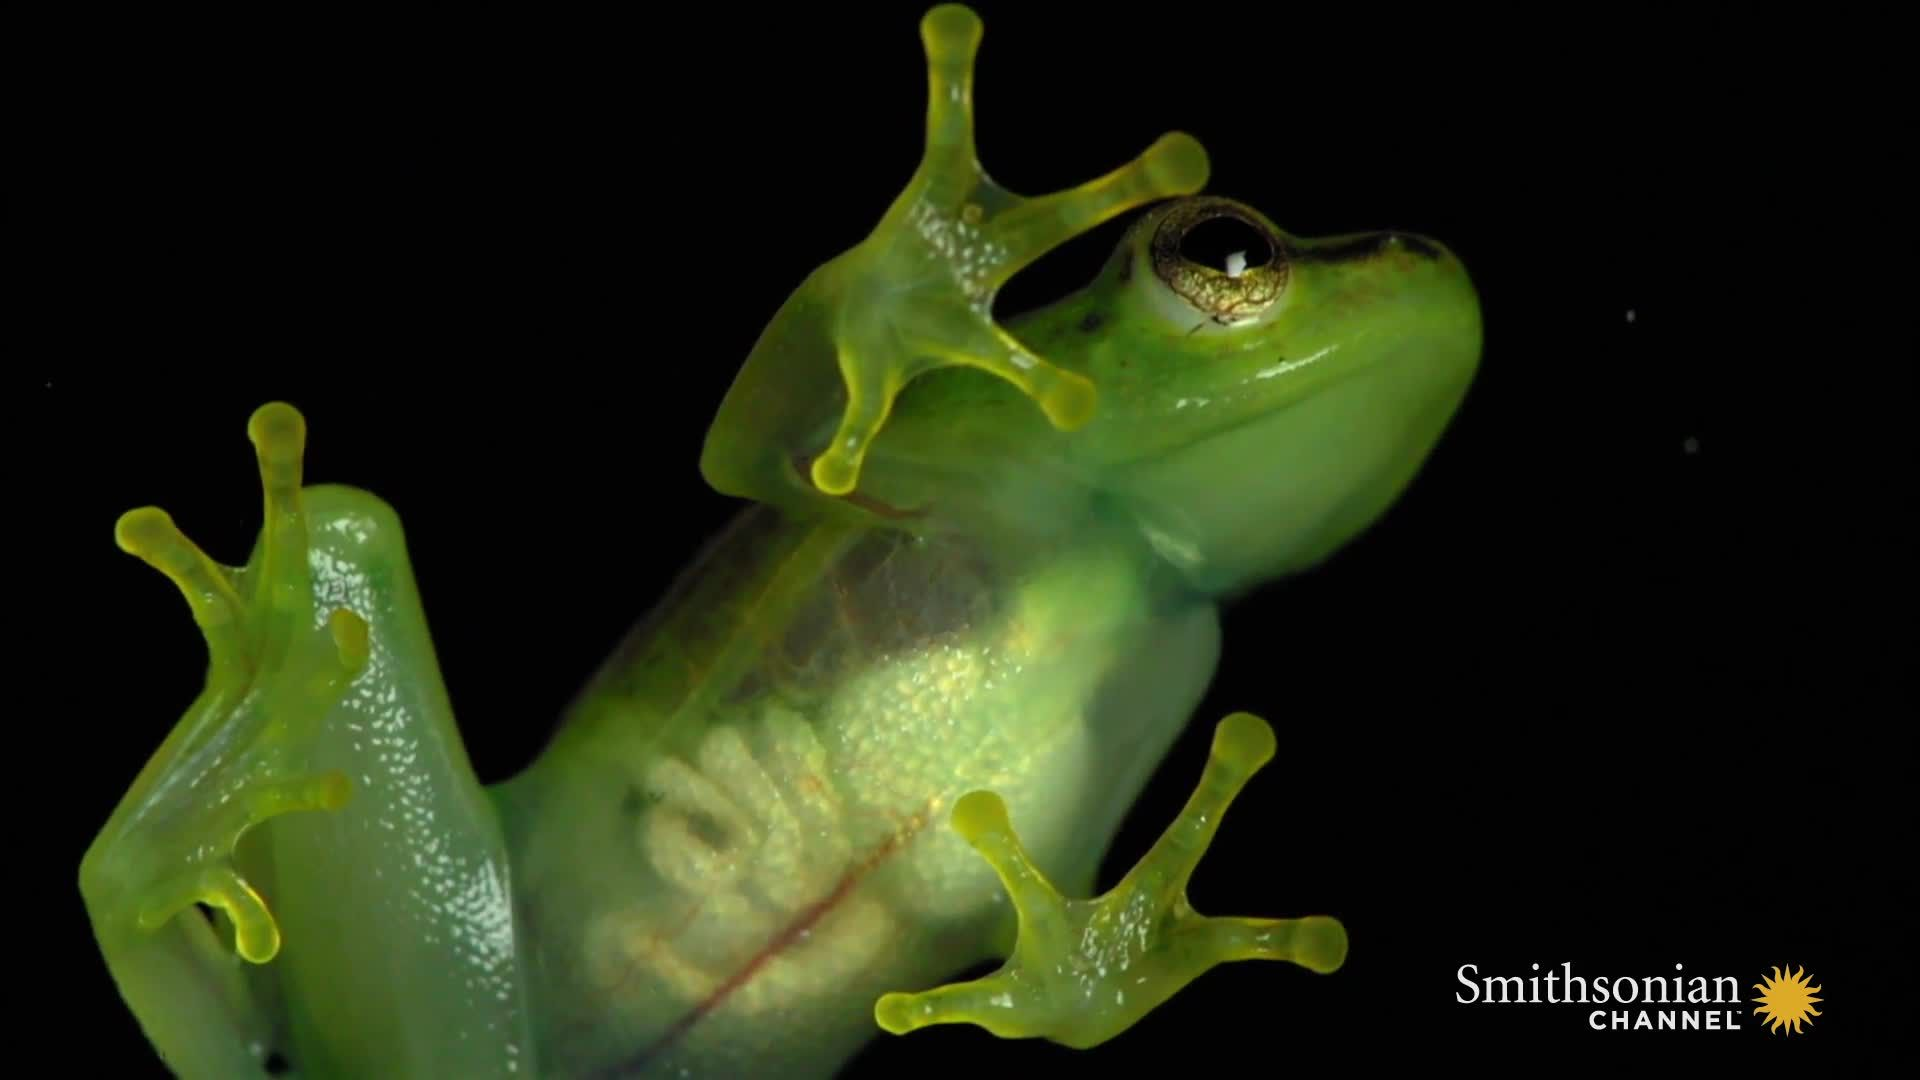 A Look Inside This See Through Frog